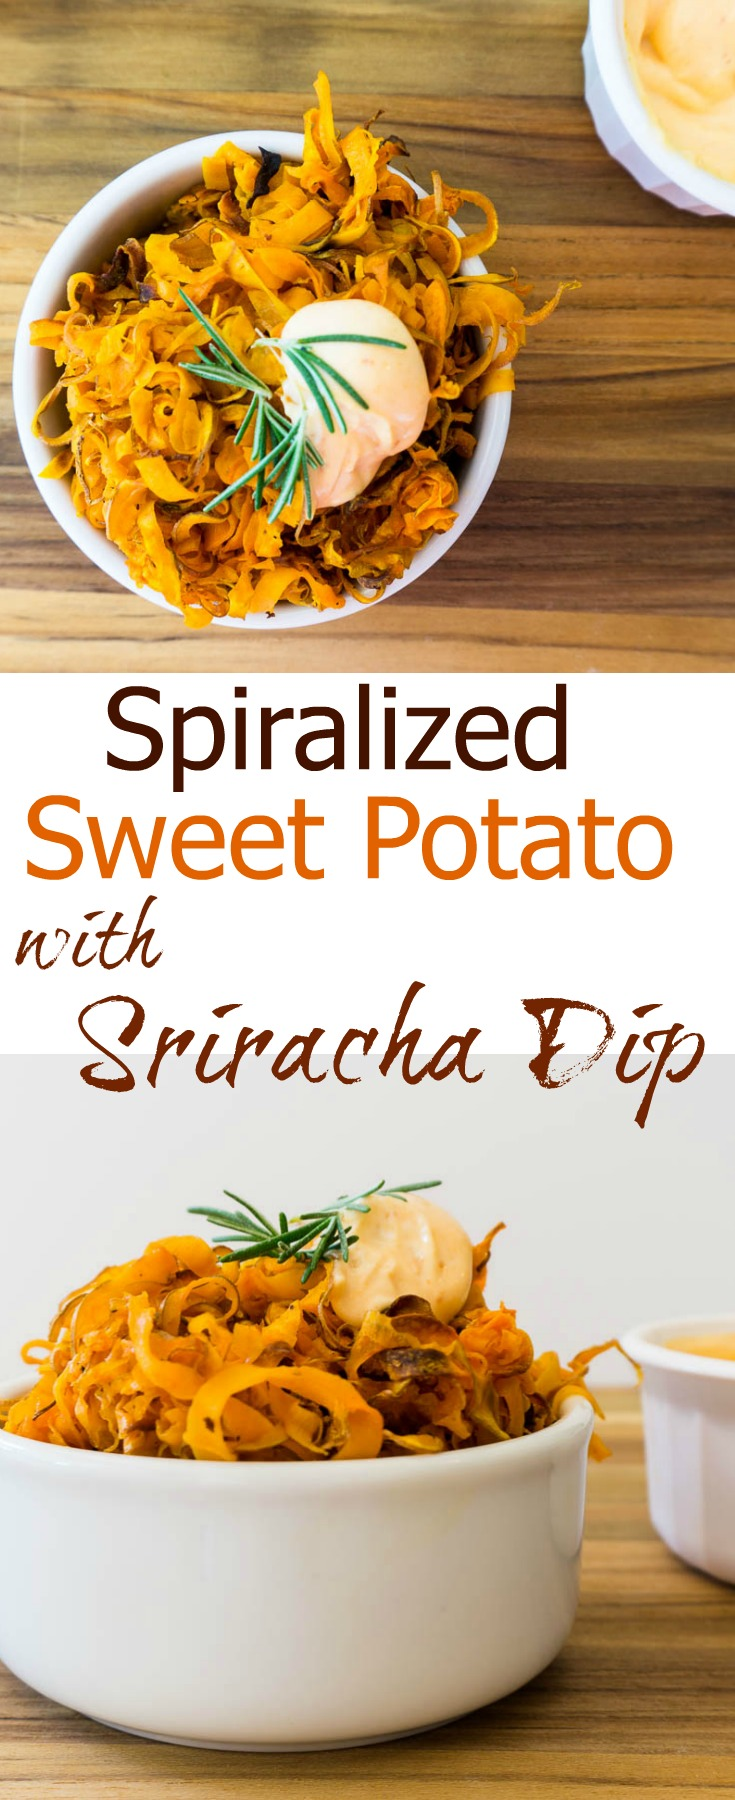 spiralized sweet potato with sriracha dip